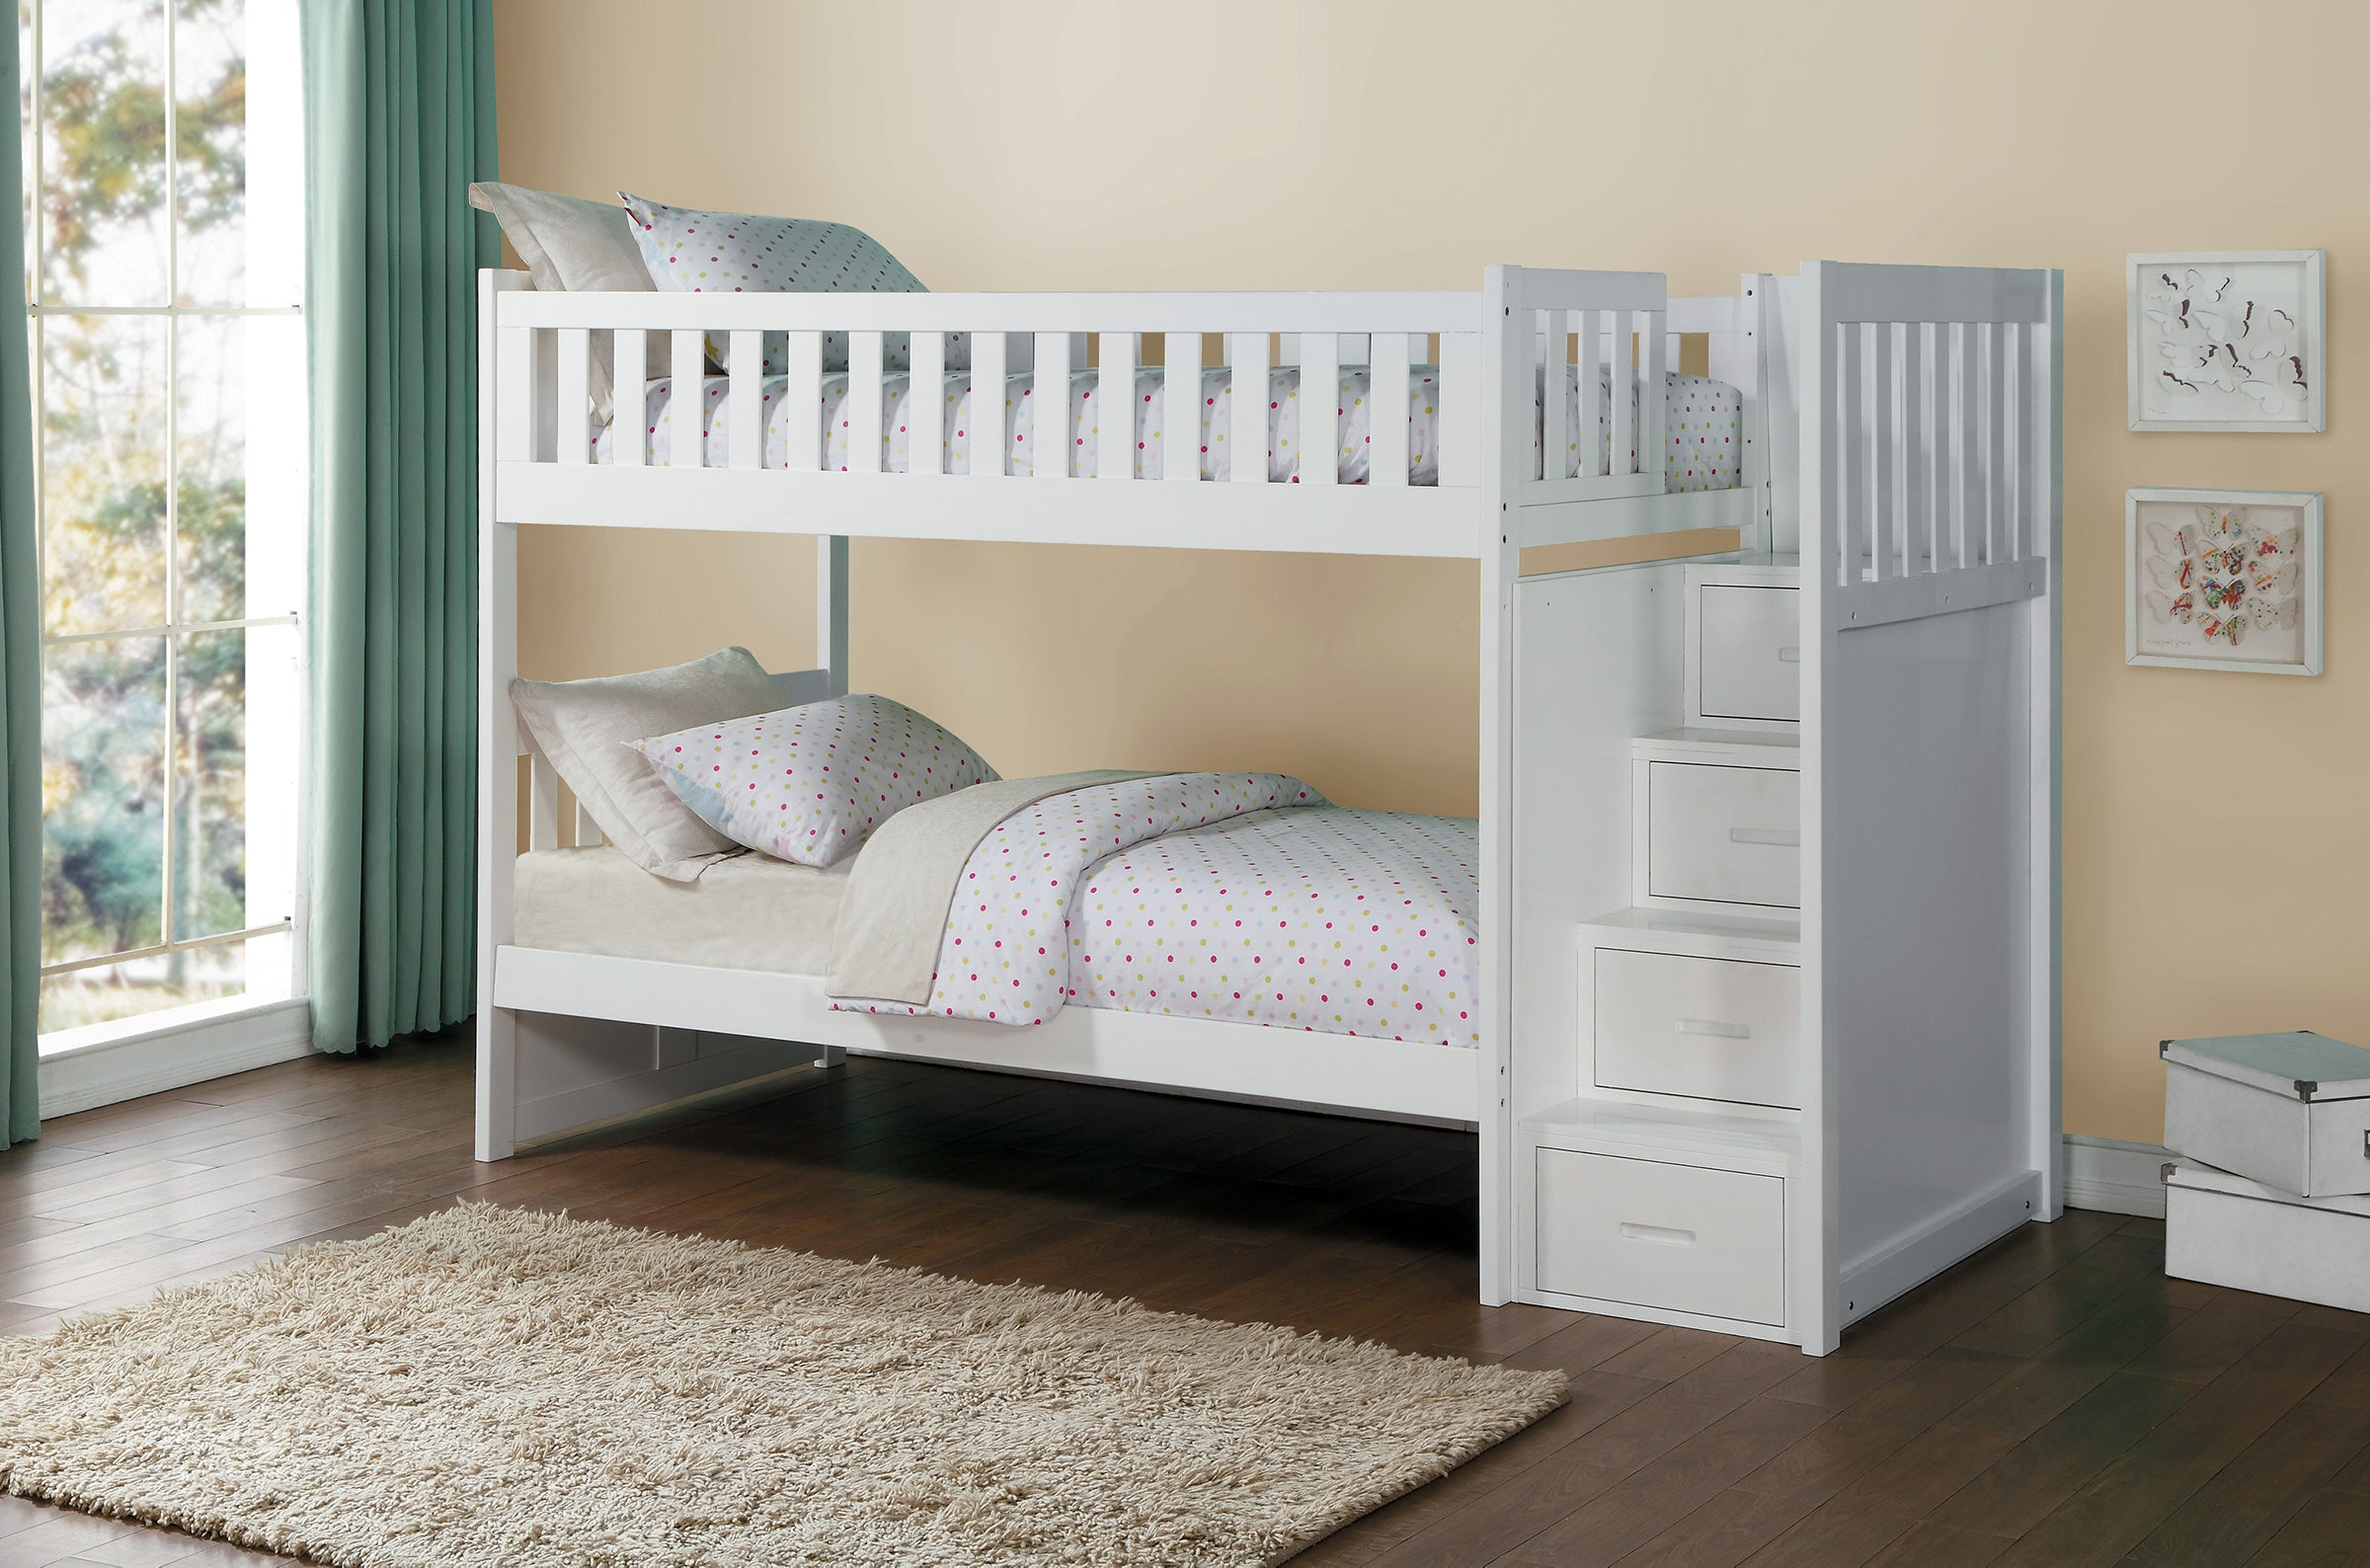 Bunk Beds White With Storage Cheaper Than Retail Price Buy Clothing Accessories And Lifestyle Products For Women Men